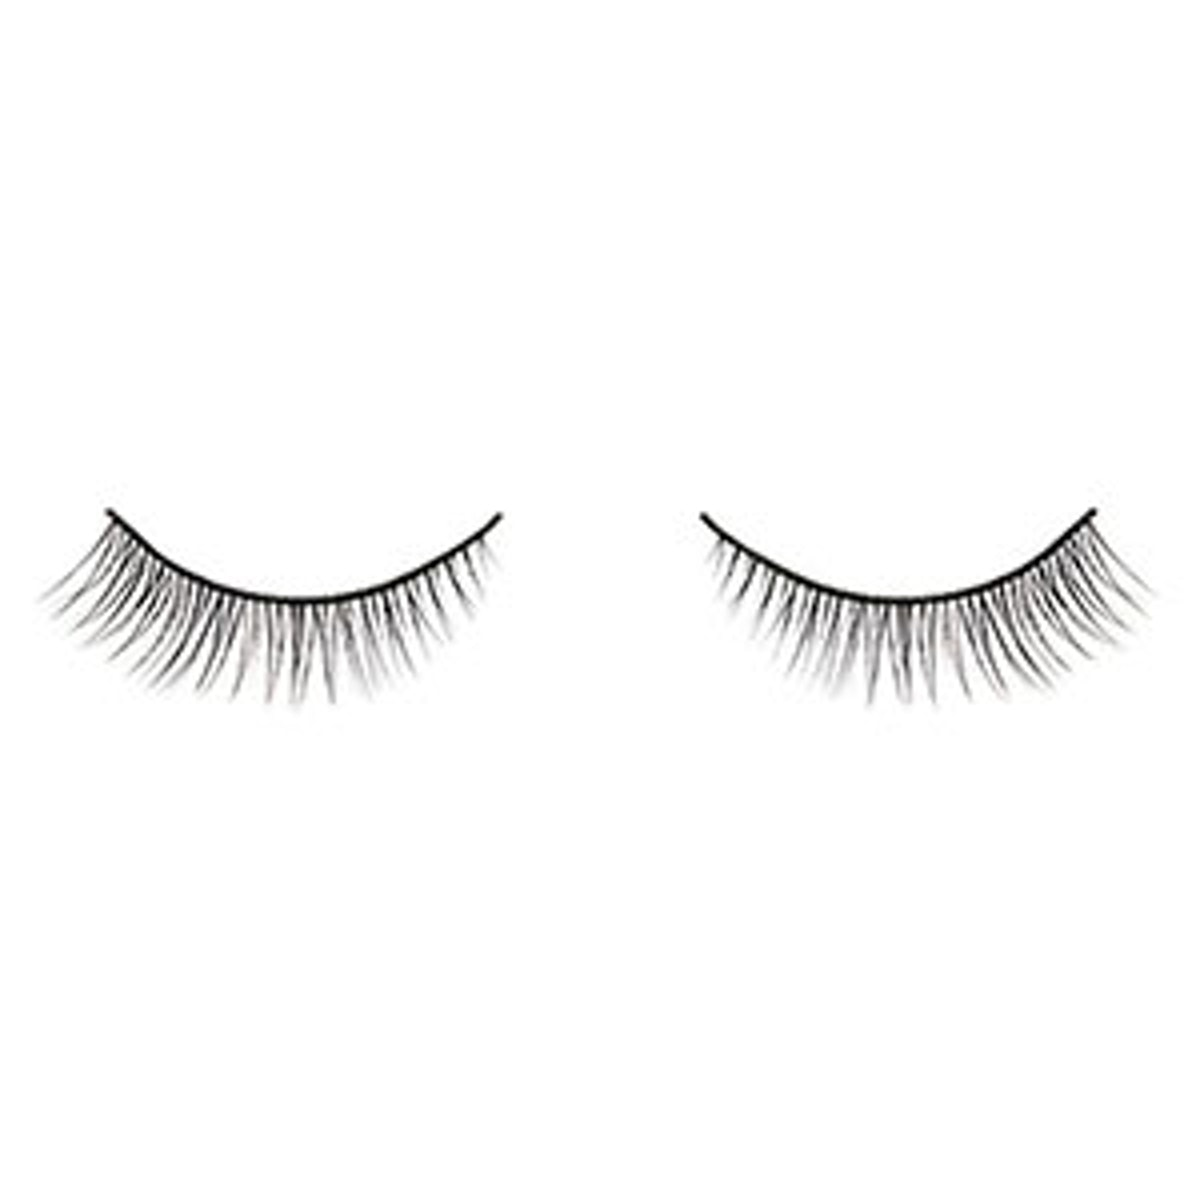 Lashes in Kennedy